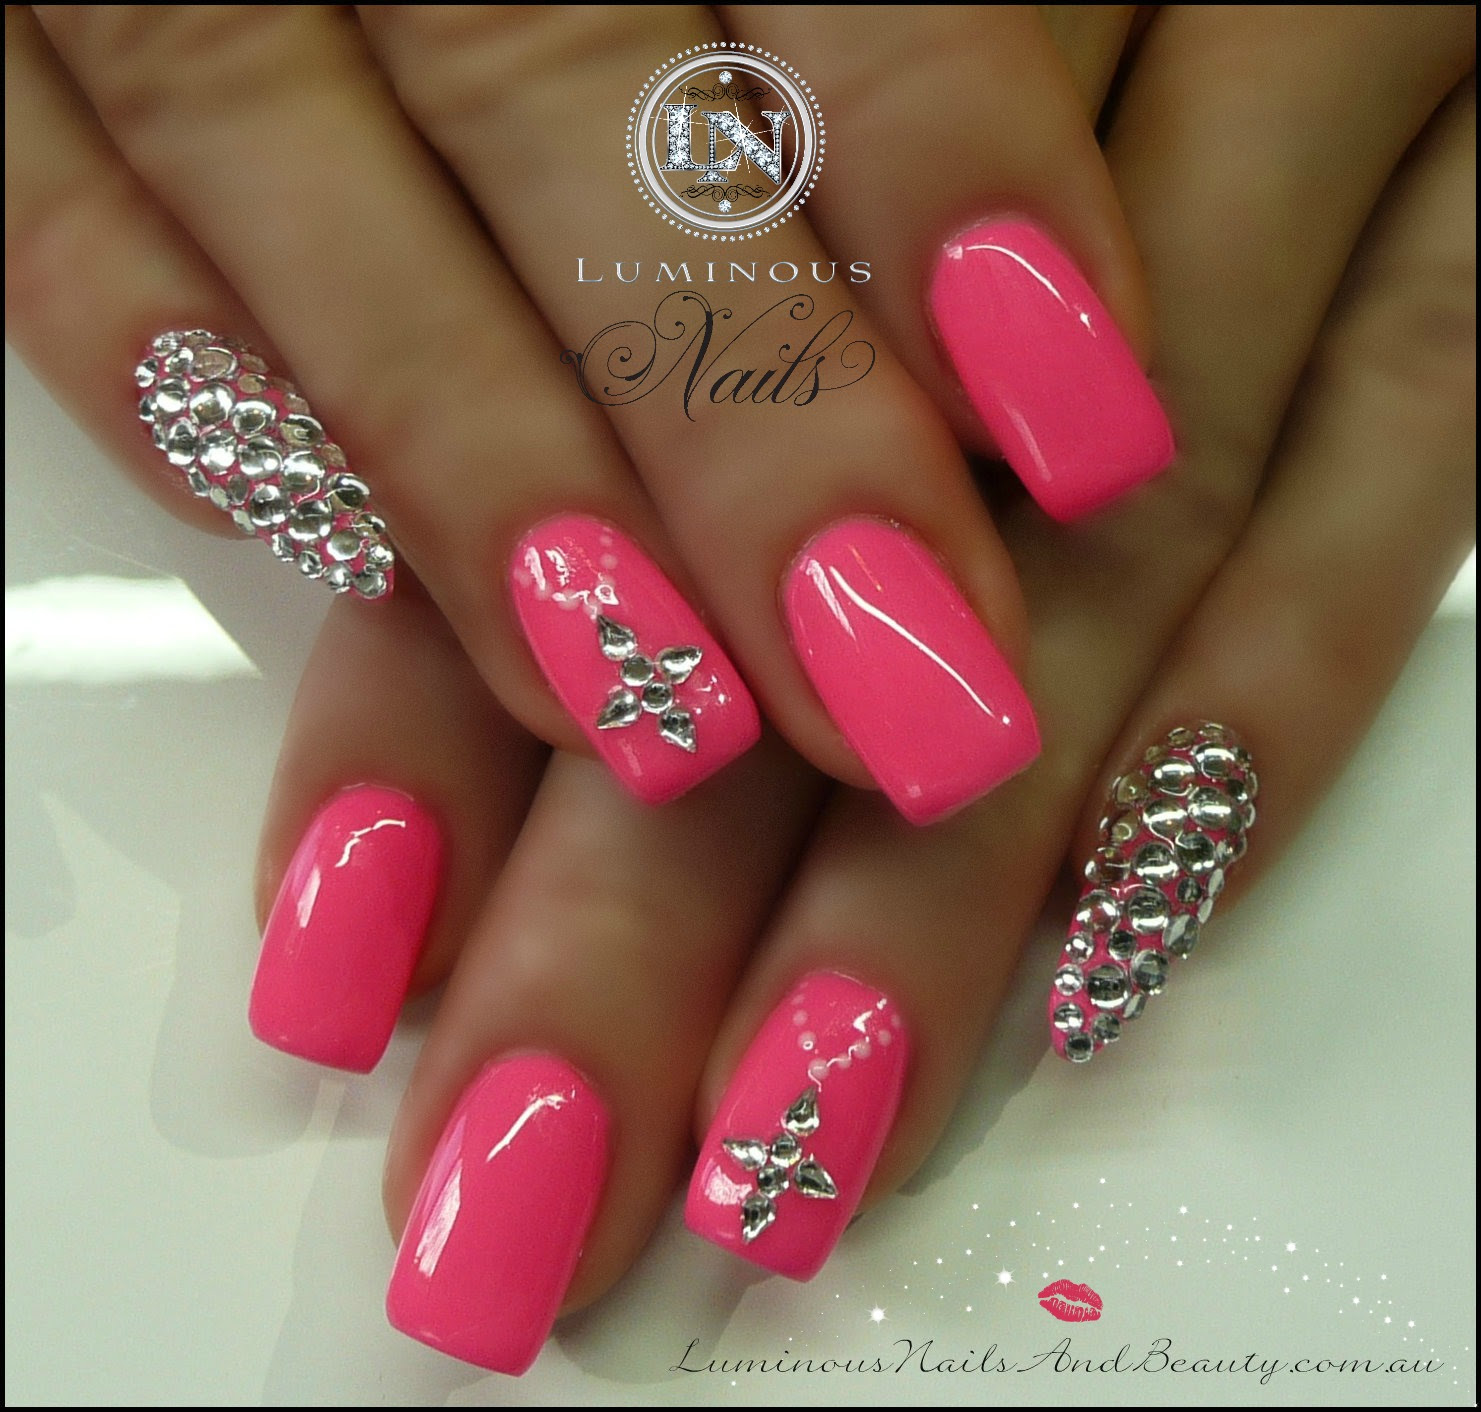 Nearest nail shop to me best nails 2018 best nail salons nyc manicure pedicure new york art prinsesfo Images